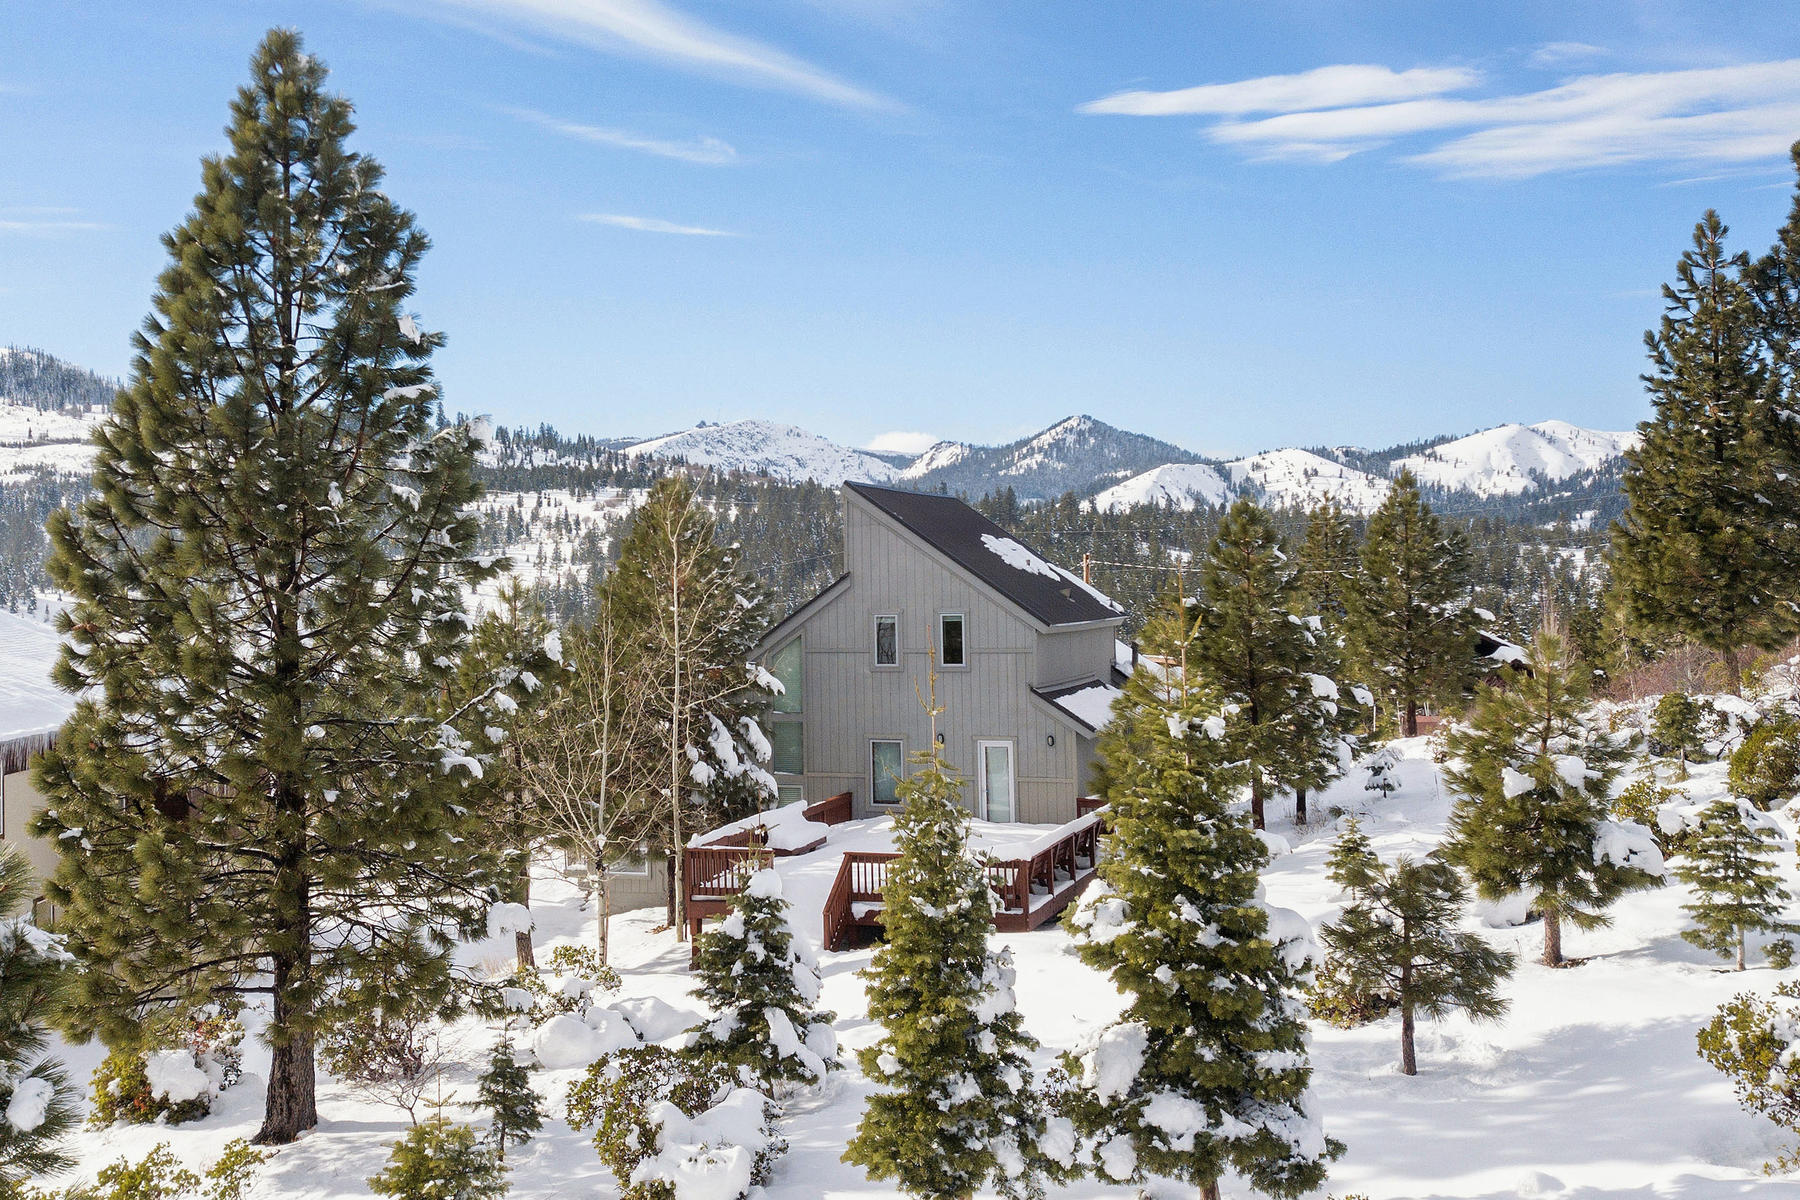 Single Family Home for Active at 12676 Pinnacle Loop, Truckee, CA 96151 12676 Pinnacle Loop Truckee, California 96161 United States